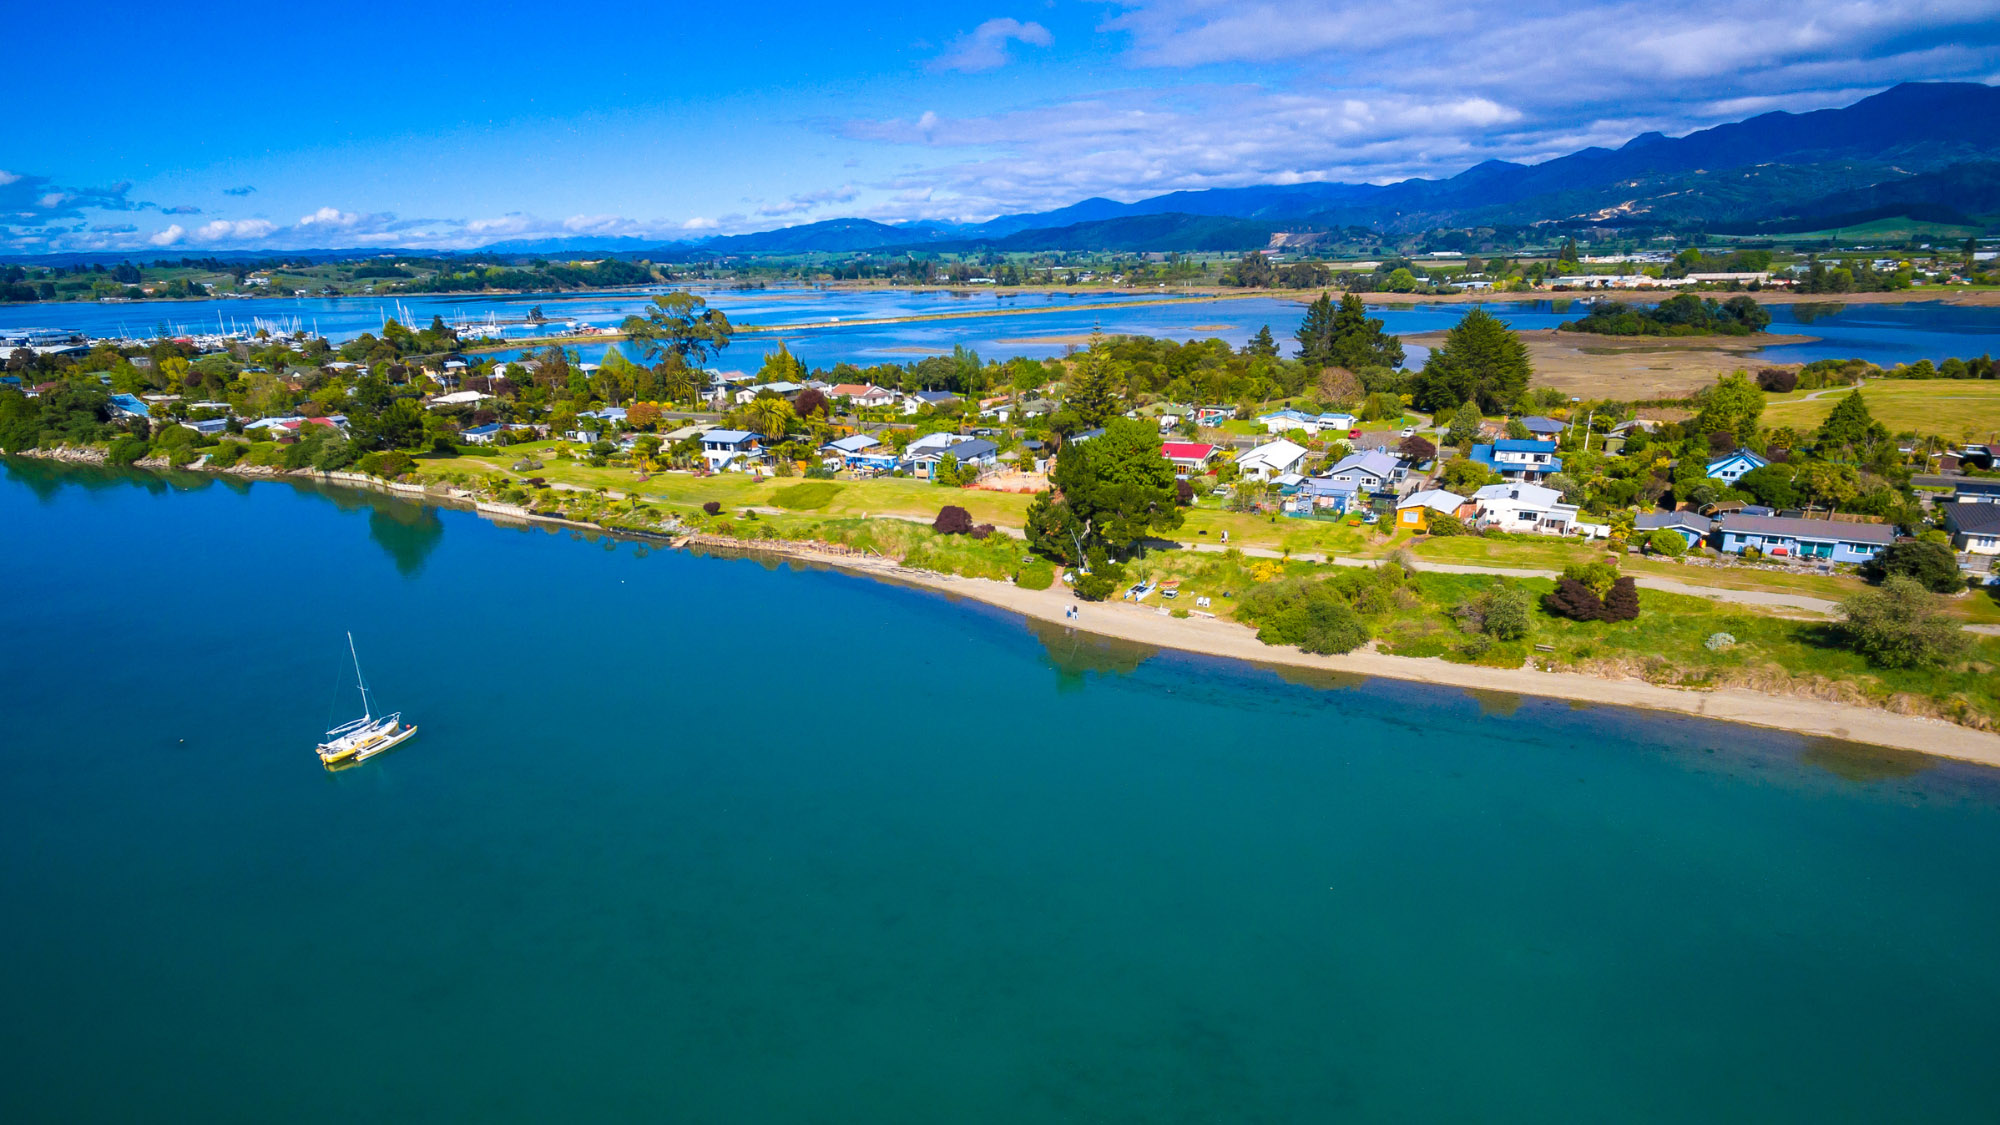 Aerial view of Motueka from the sea